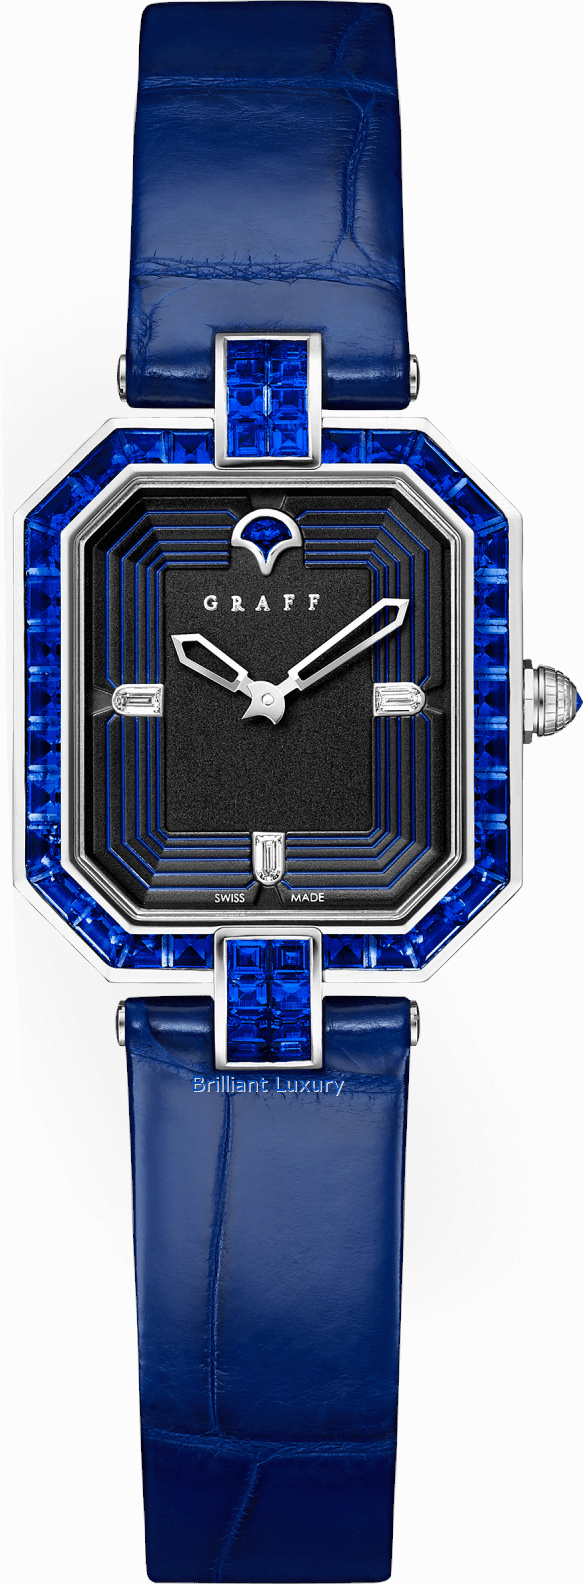 Graff Vendôme Ladies watch